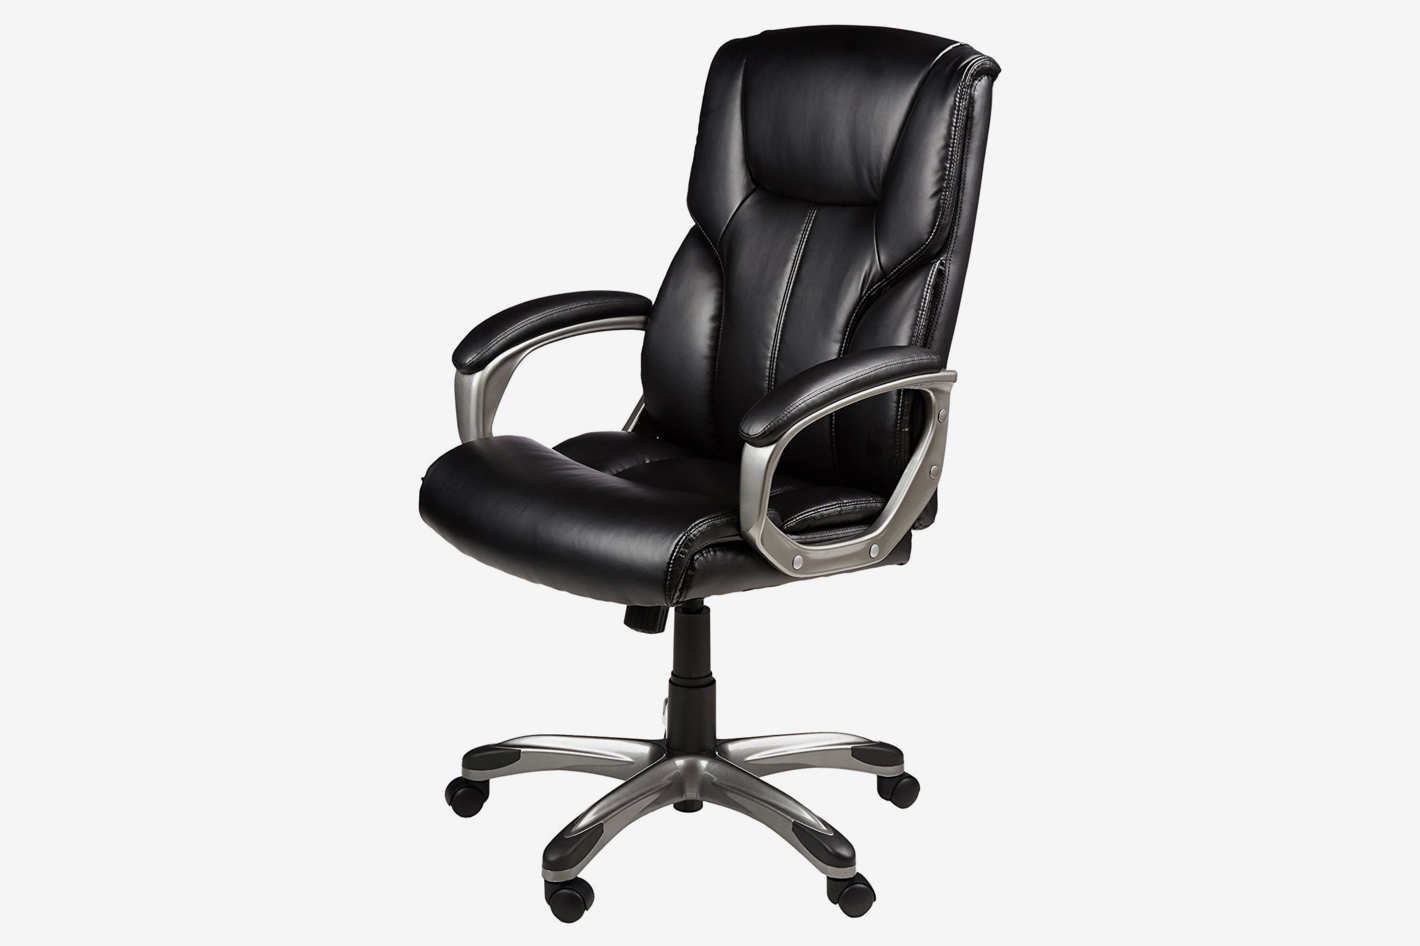 get chairs of anamariaglavan desk best support a can provide your office high inspired chair on back utmost comfort image you grid the to and with amazon racing designed original